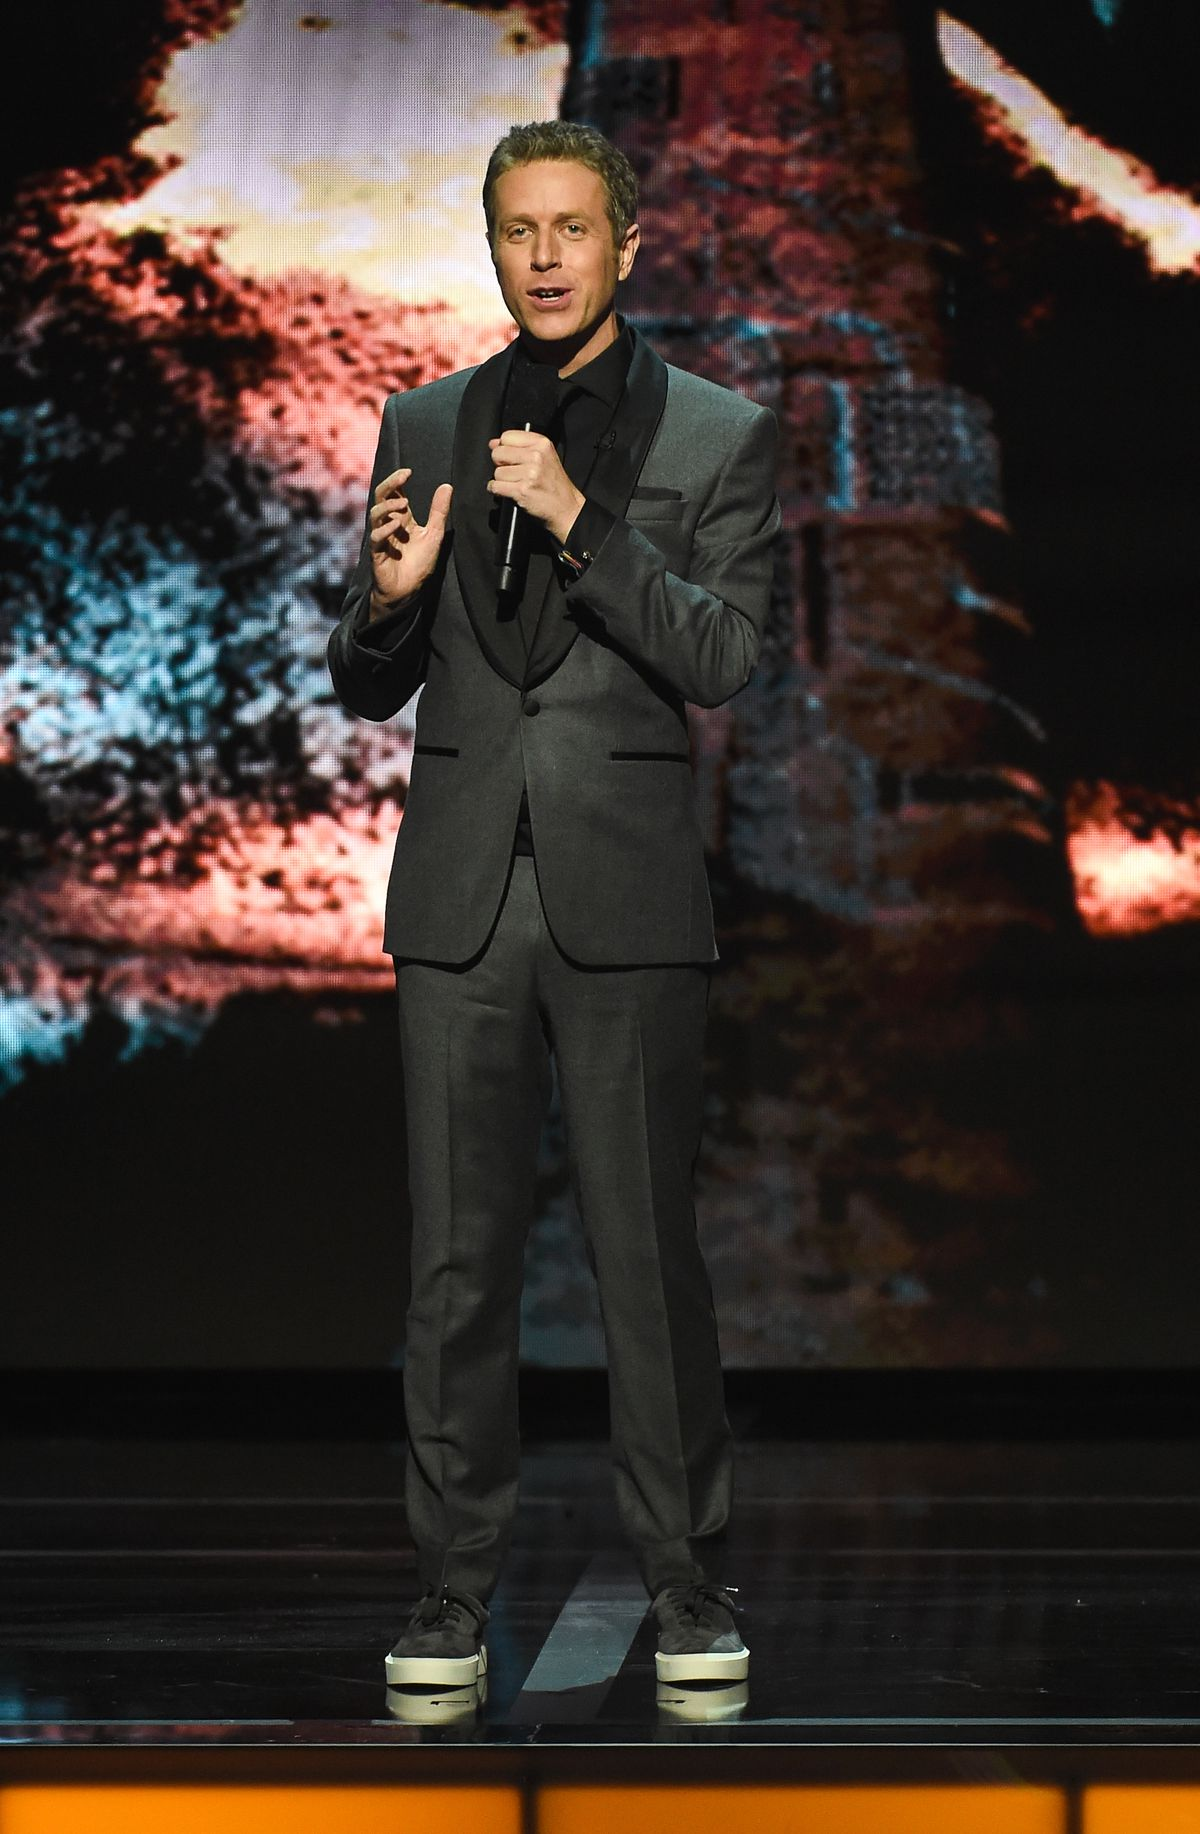 Geoff Keighley speaks onstage at the Game Awards 2019 at the Microsoft Theater